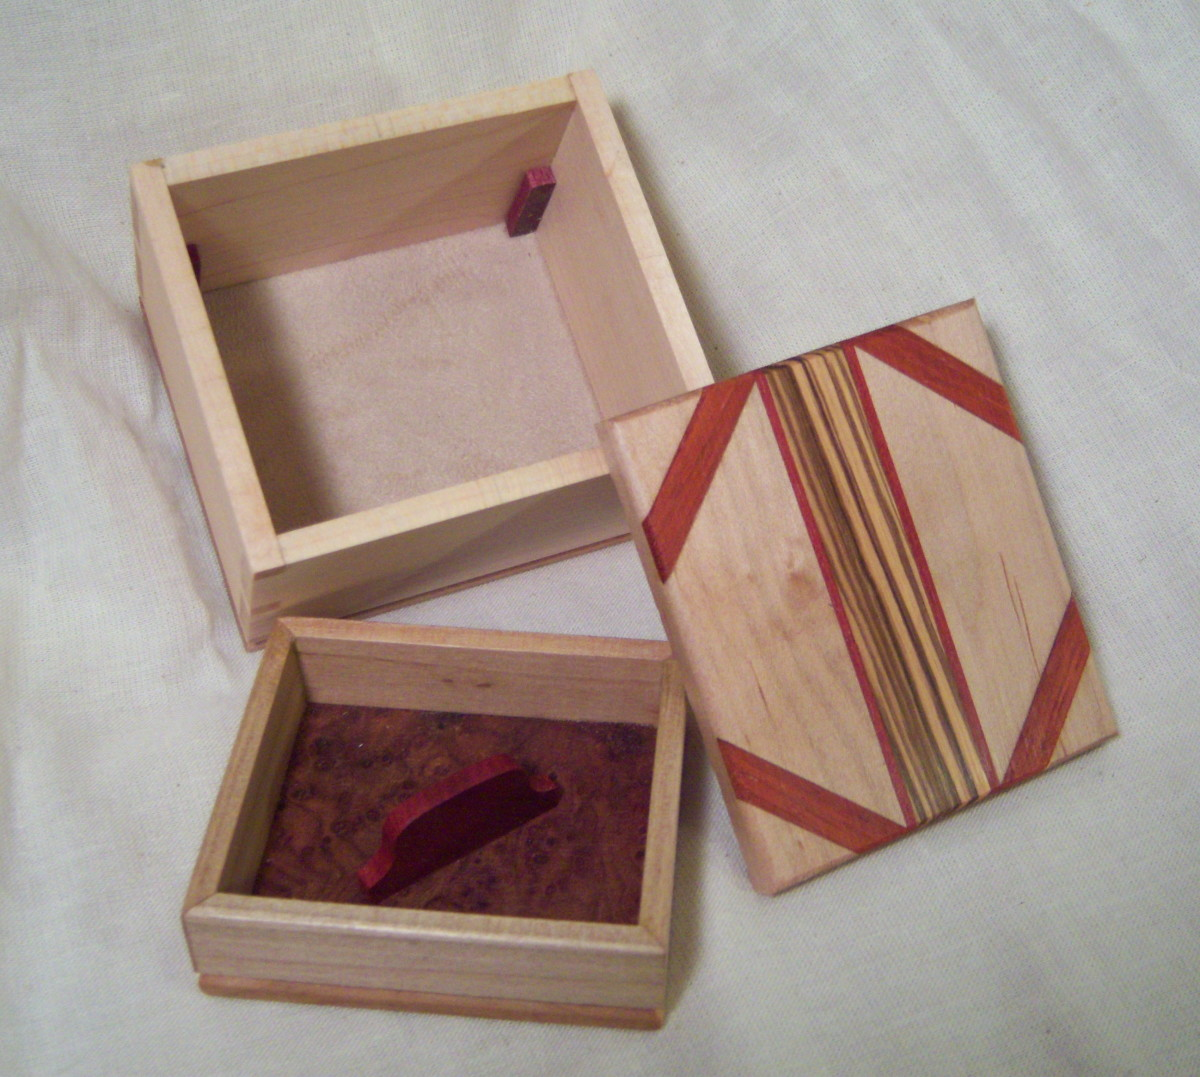 Idea#5: Storing earrings in small jewelry boxes